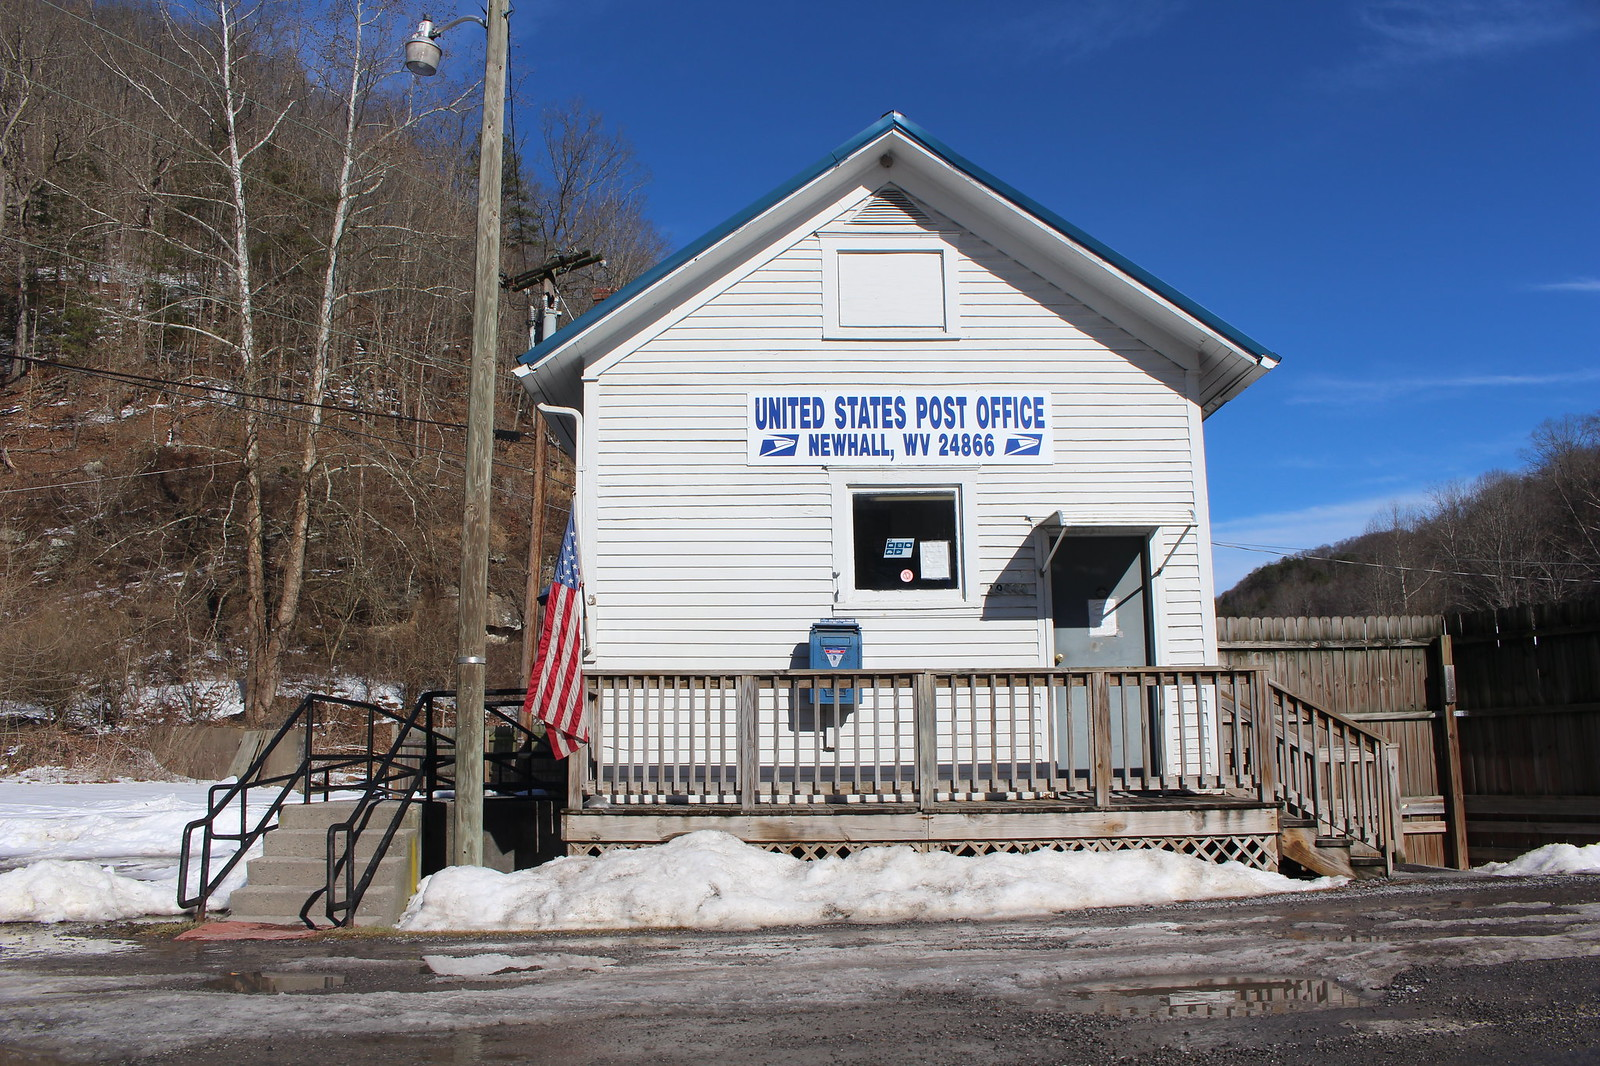 Newhall, West Virginia Post Office